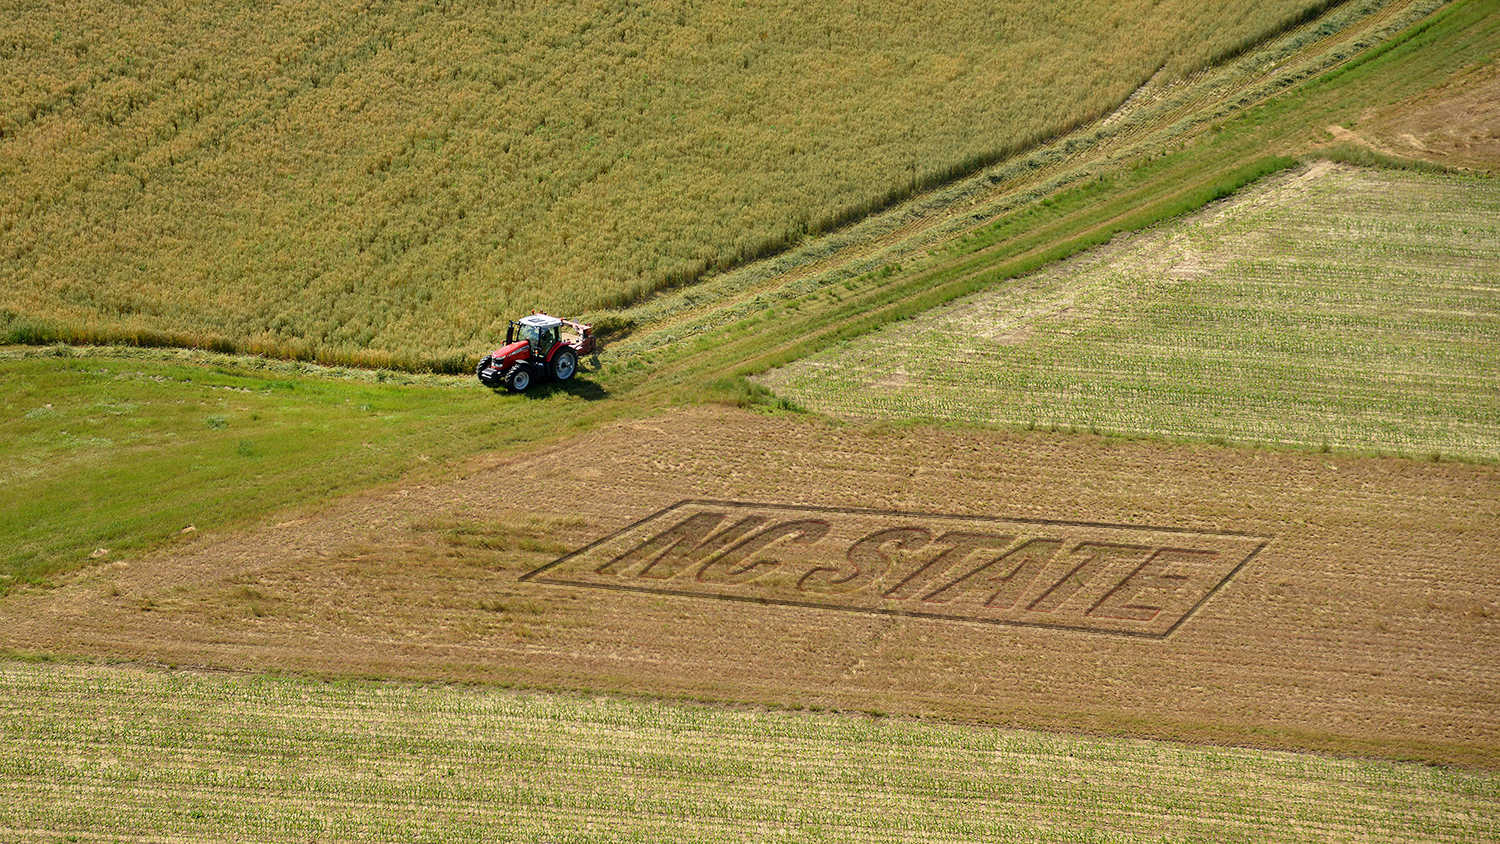 tractor mowing a field